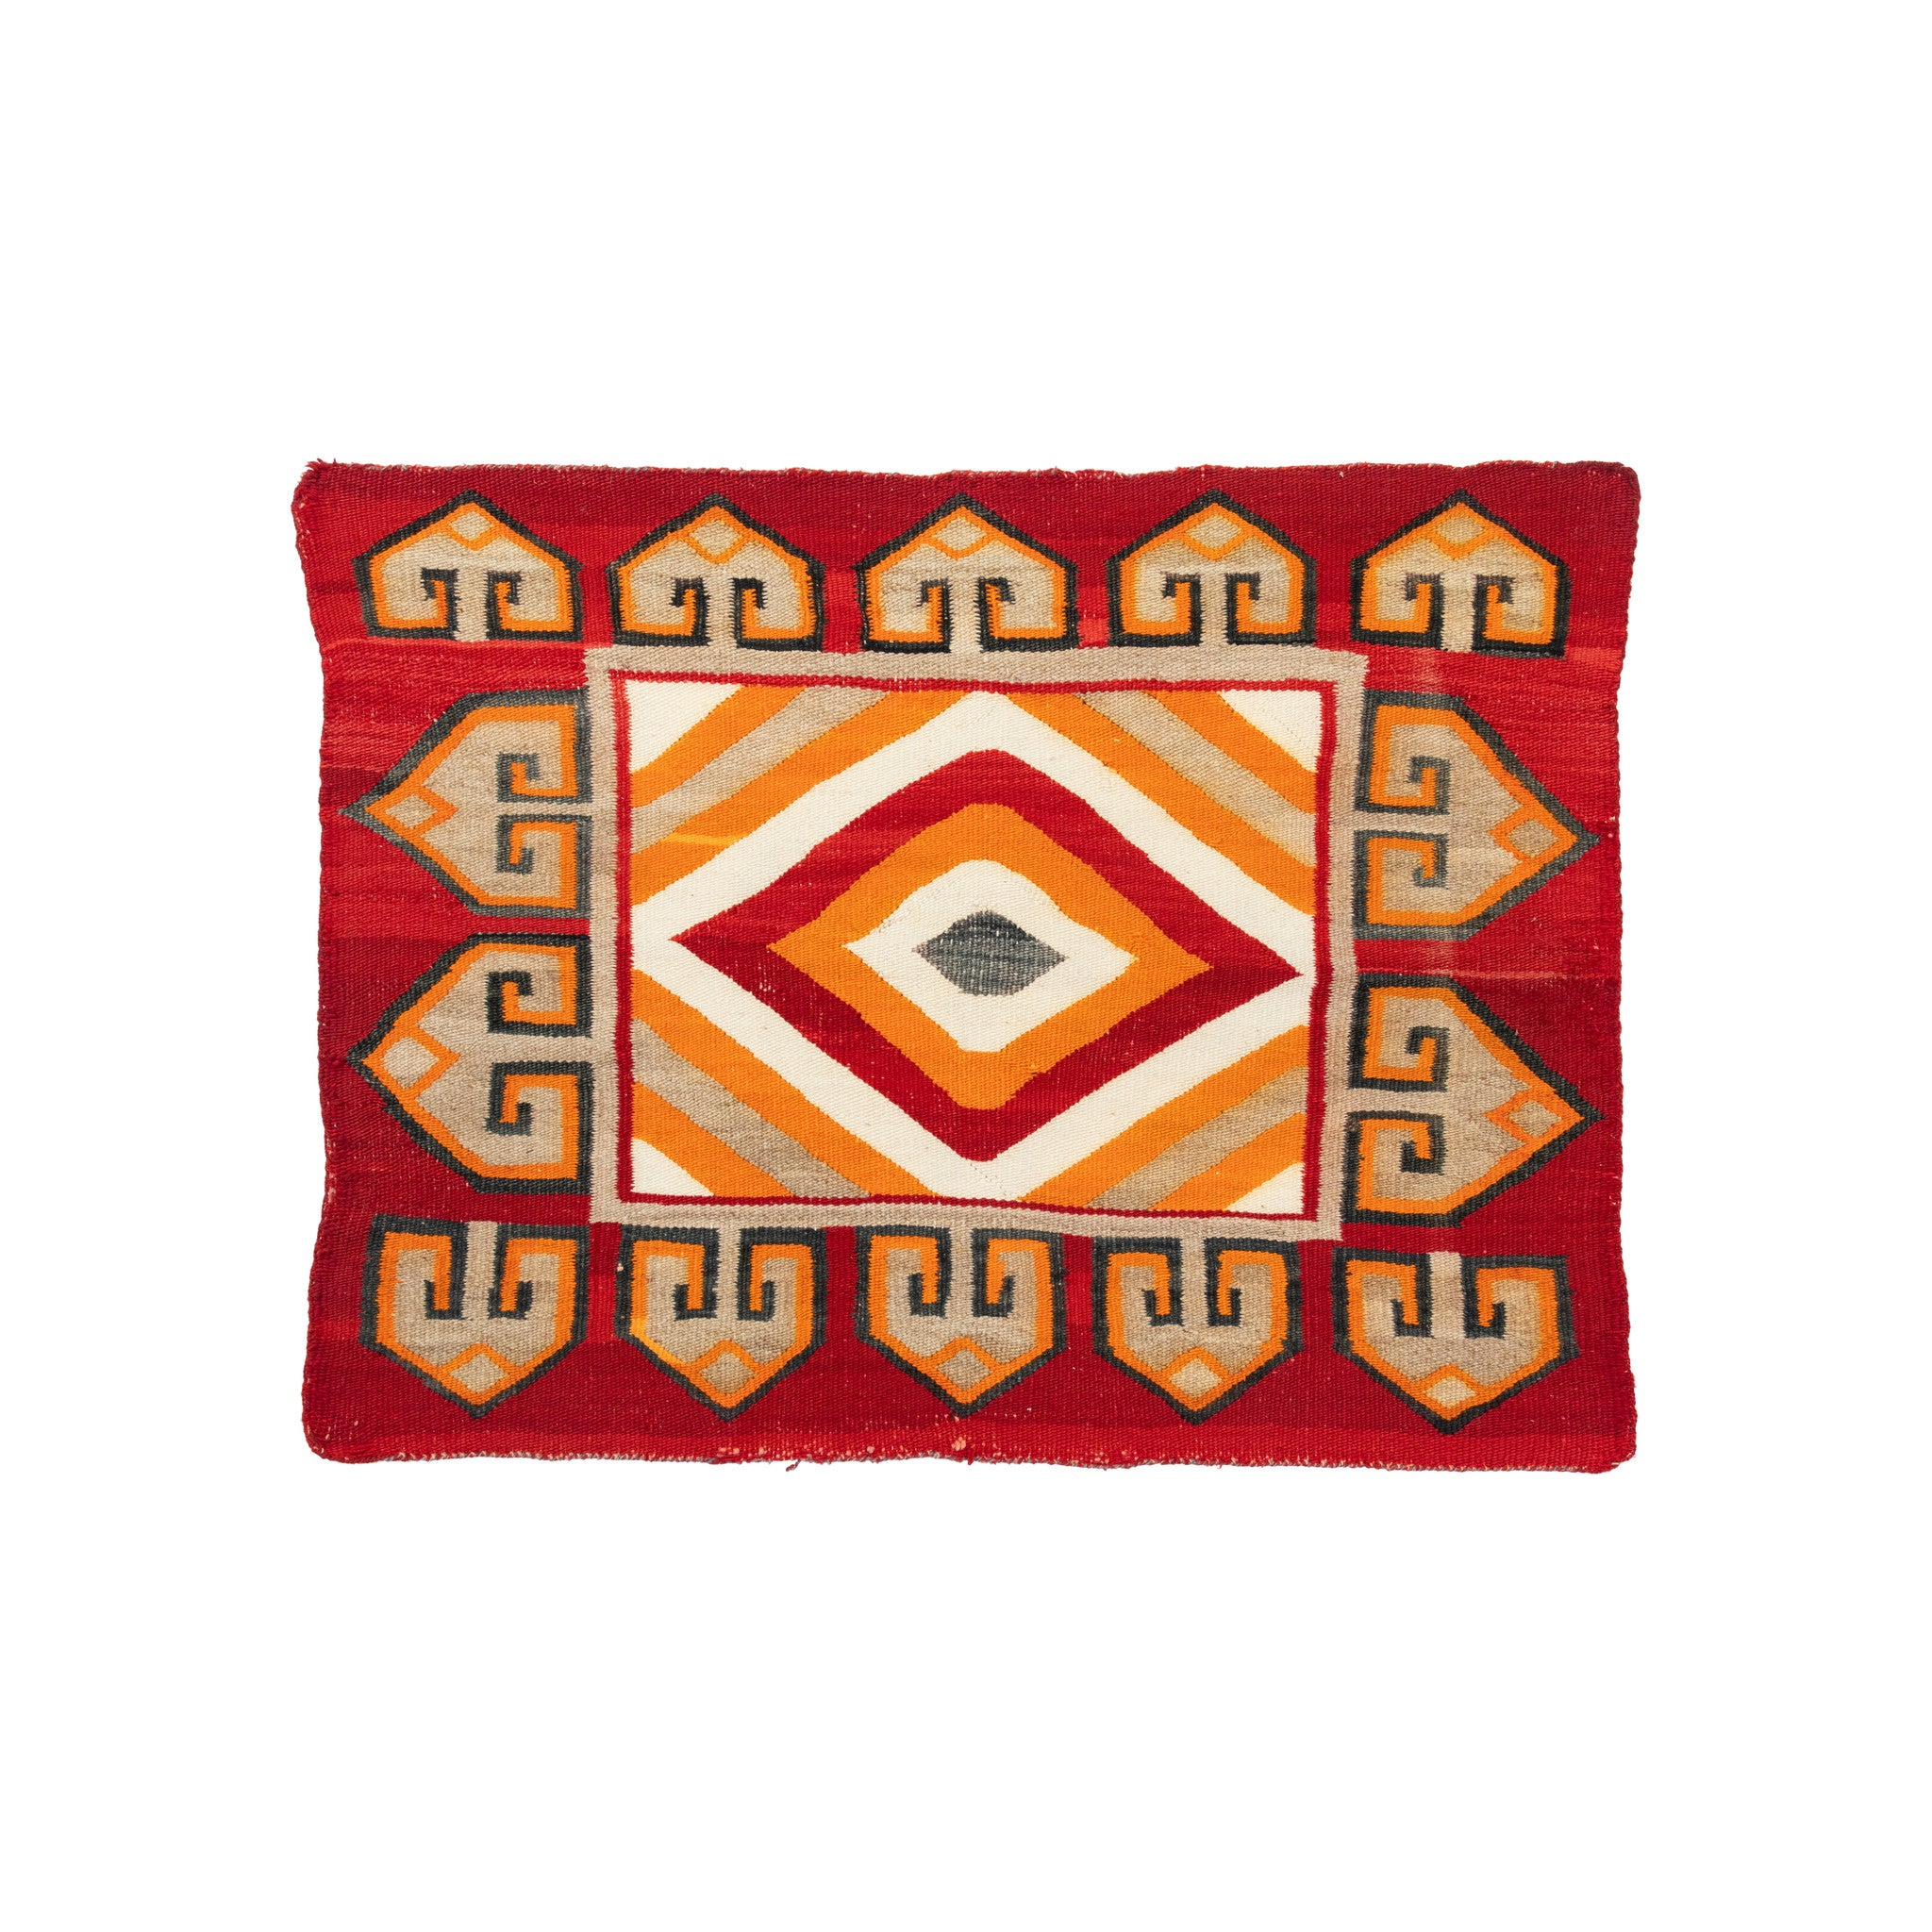 Navajo Single Saddle Blanket 1' to 4', american indian: weaving: navajo, blankets, navajo, single saddles